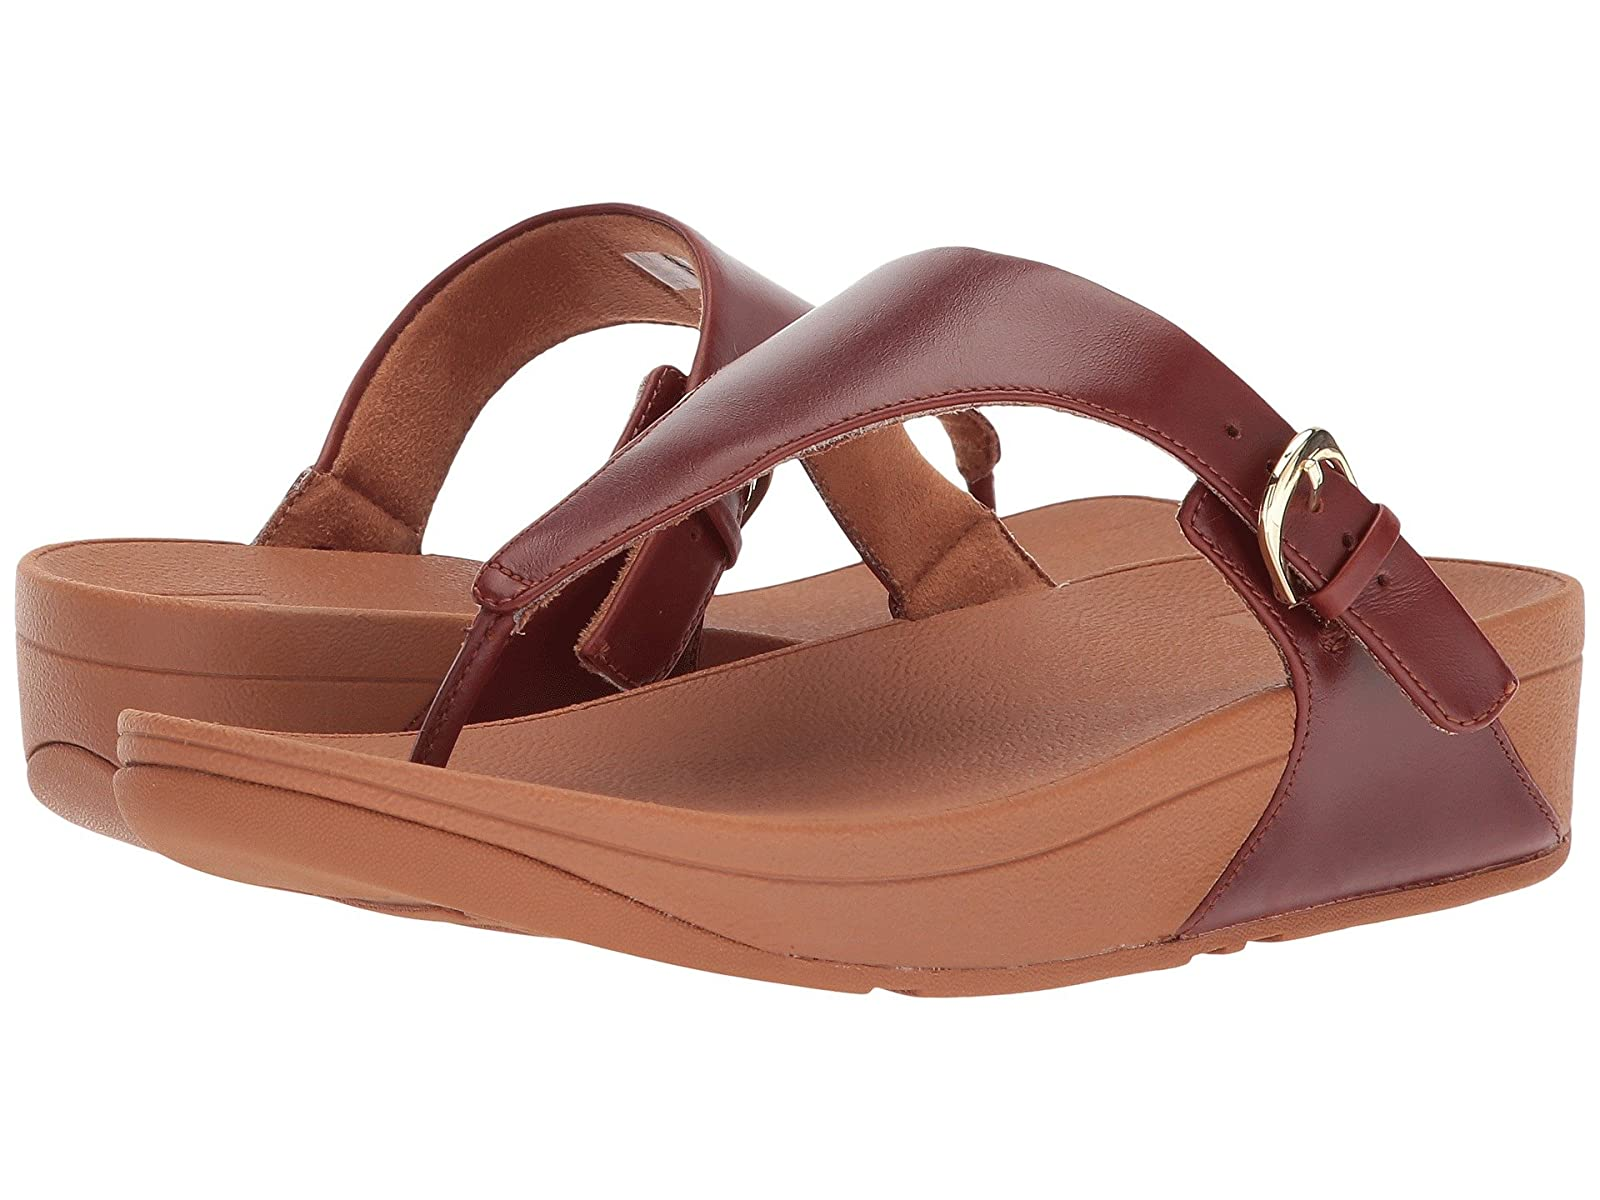 FitFlop Skinny Toe Thong SandalAtmospheric grades have affordable shoes